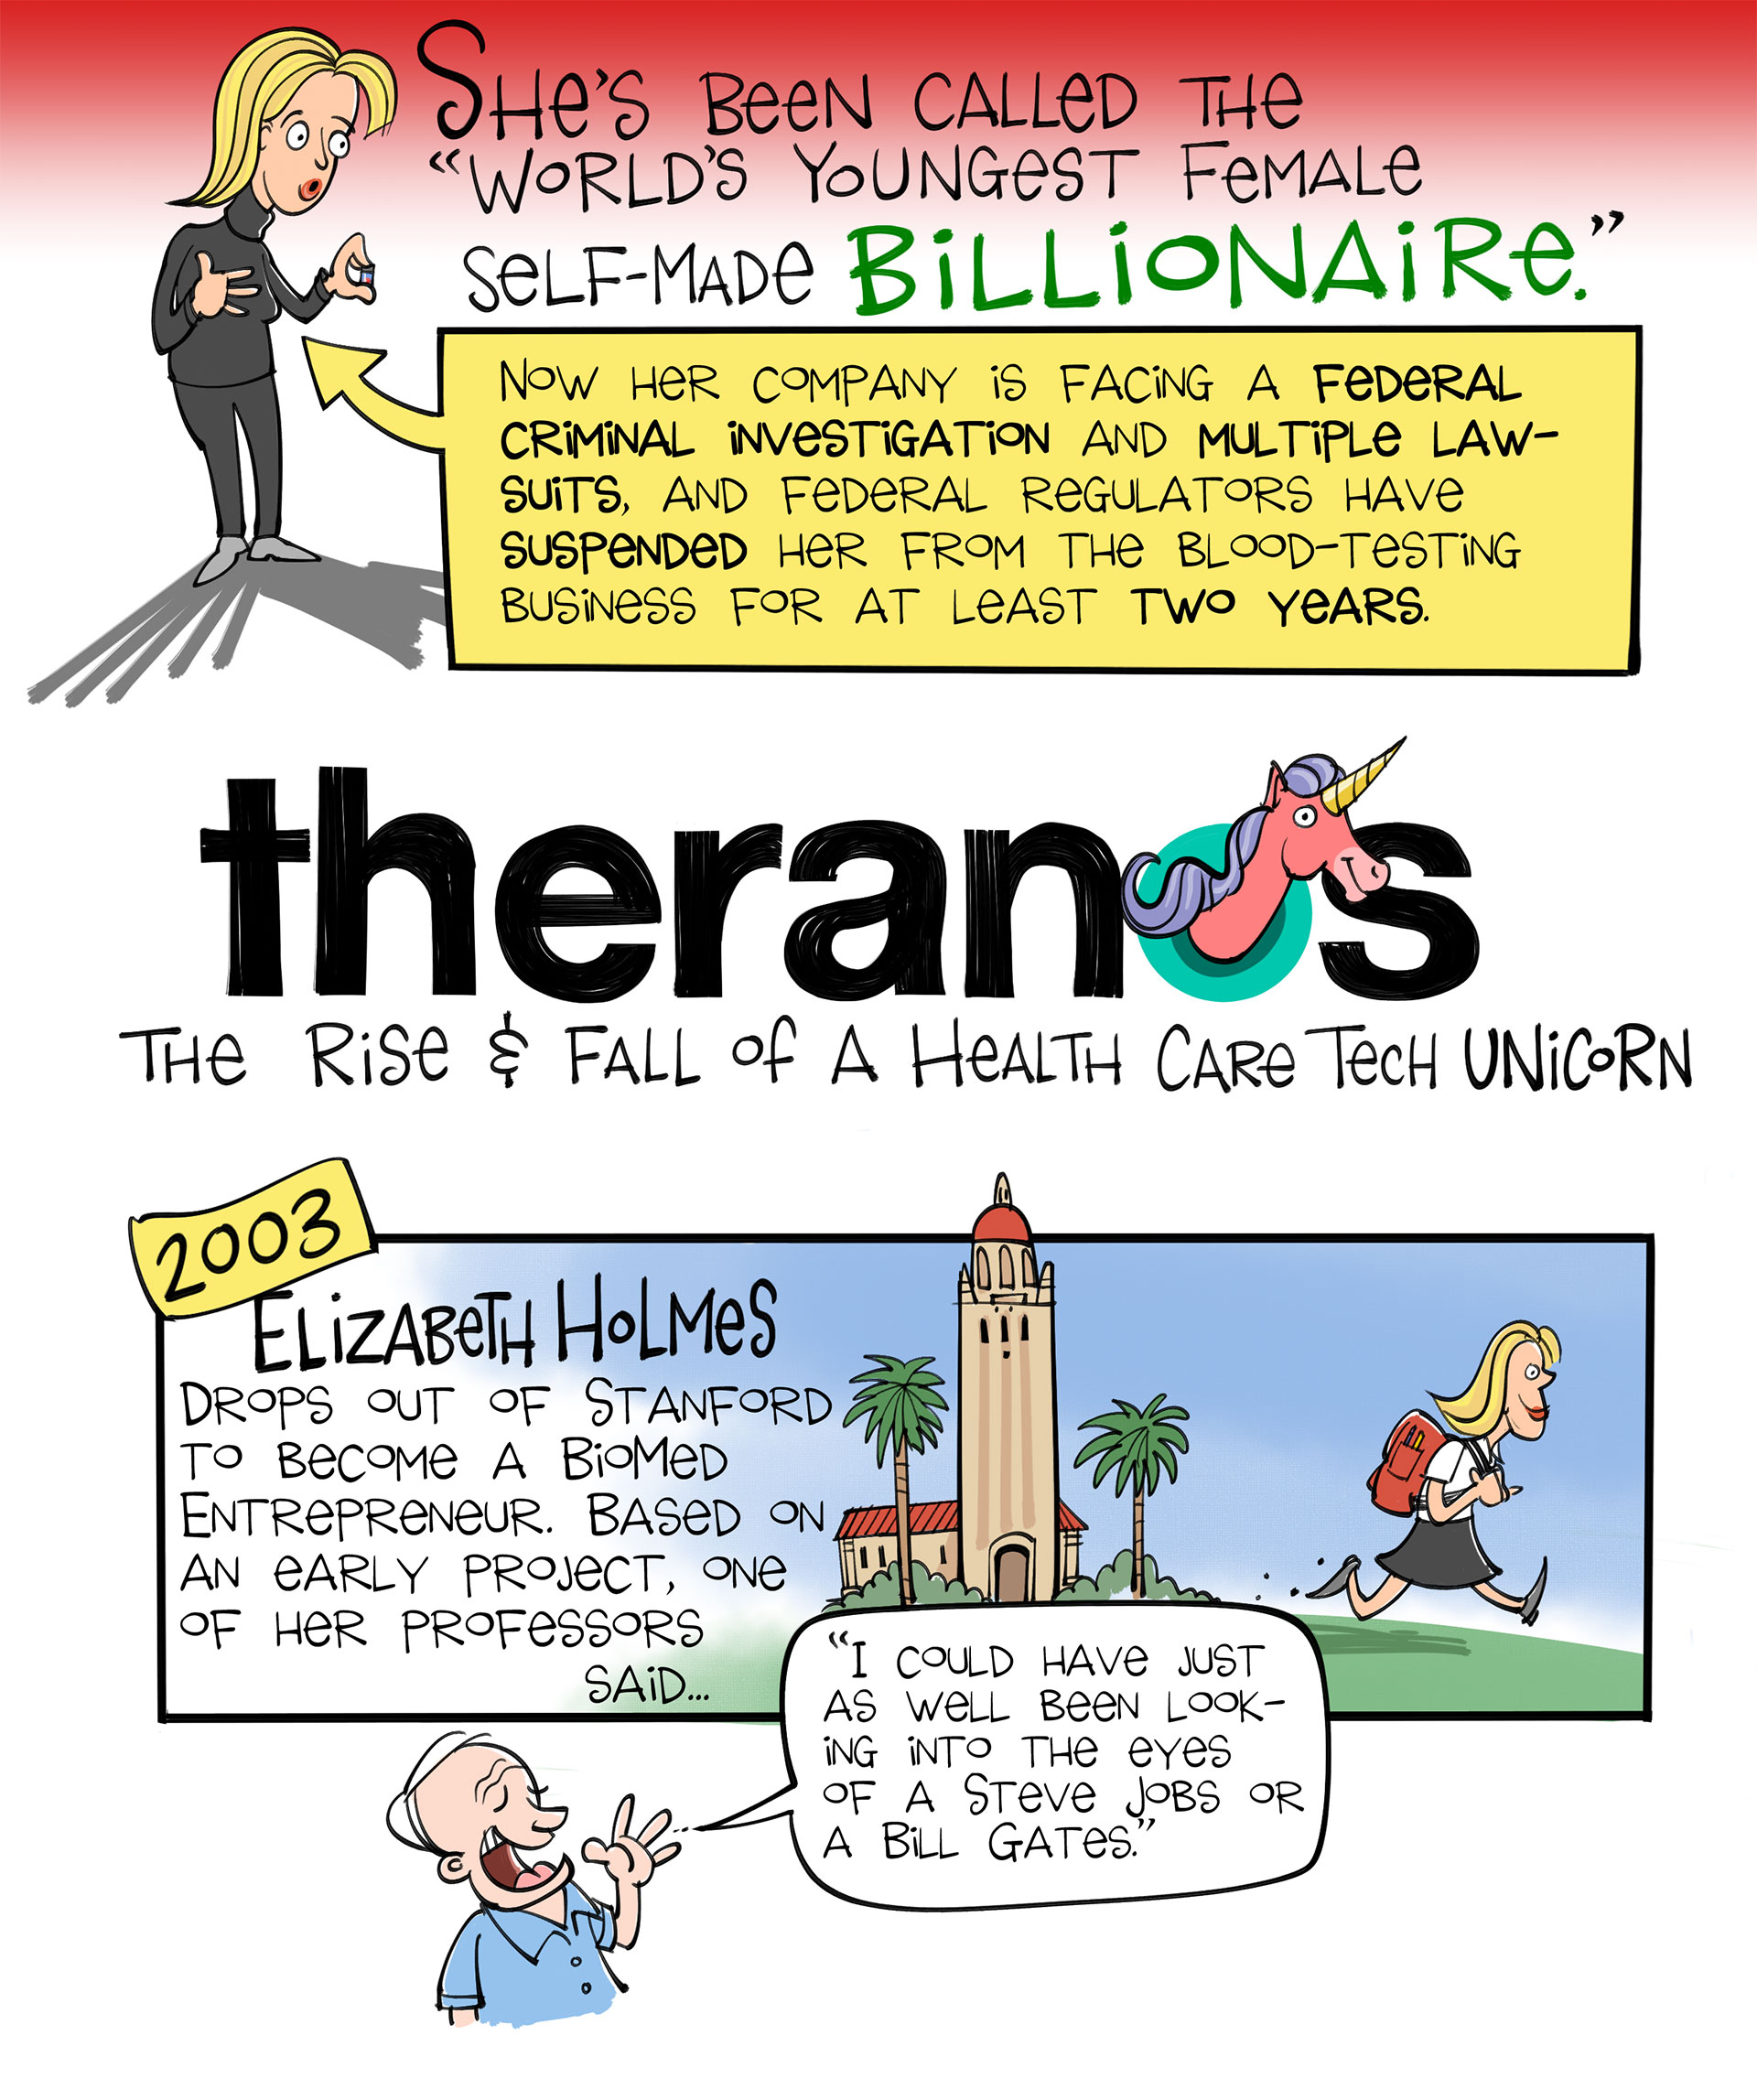 KQED_Theranos_01